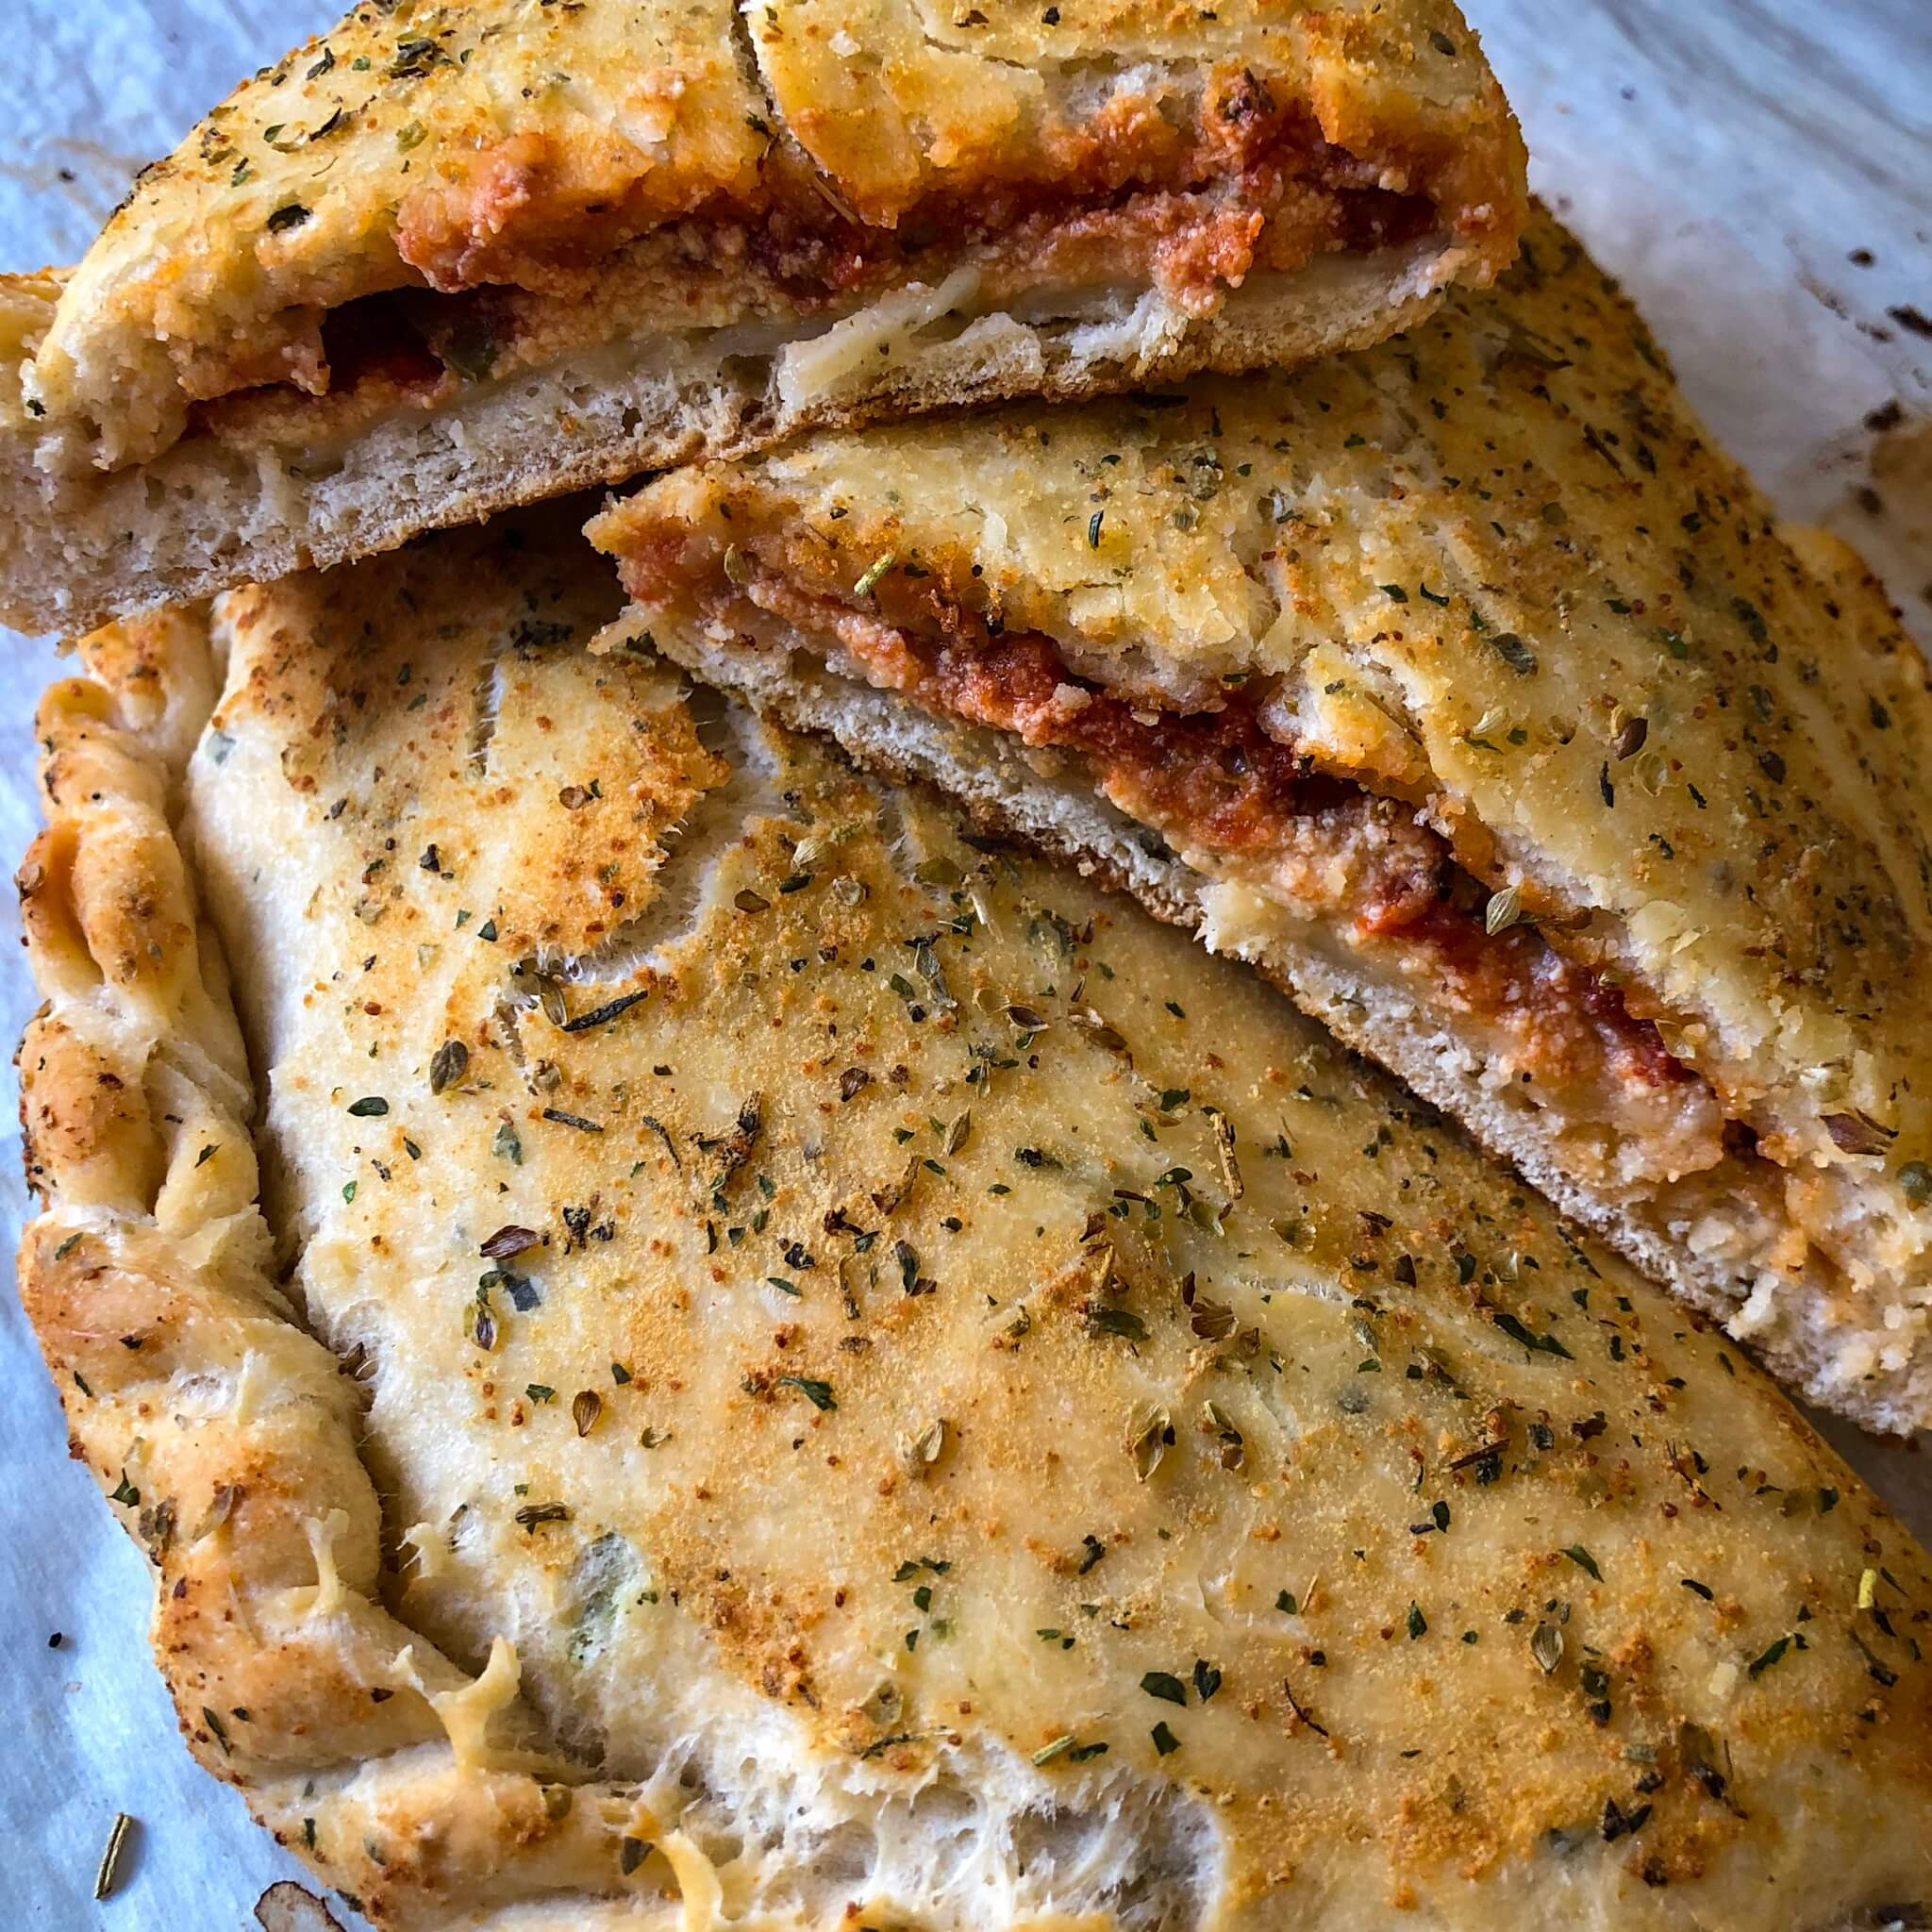 calzones cut open looking like a pizza pocket